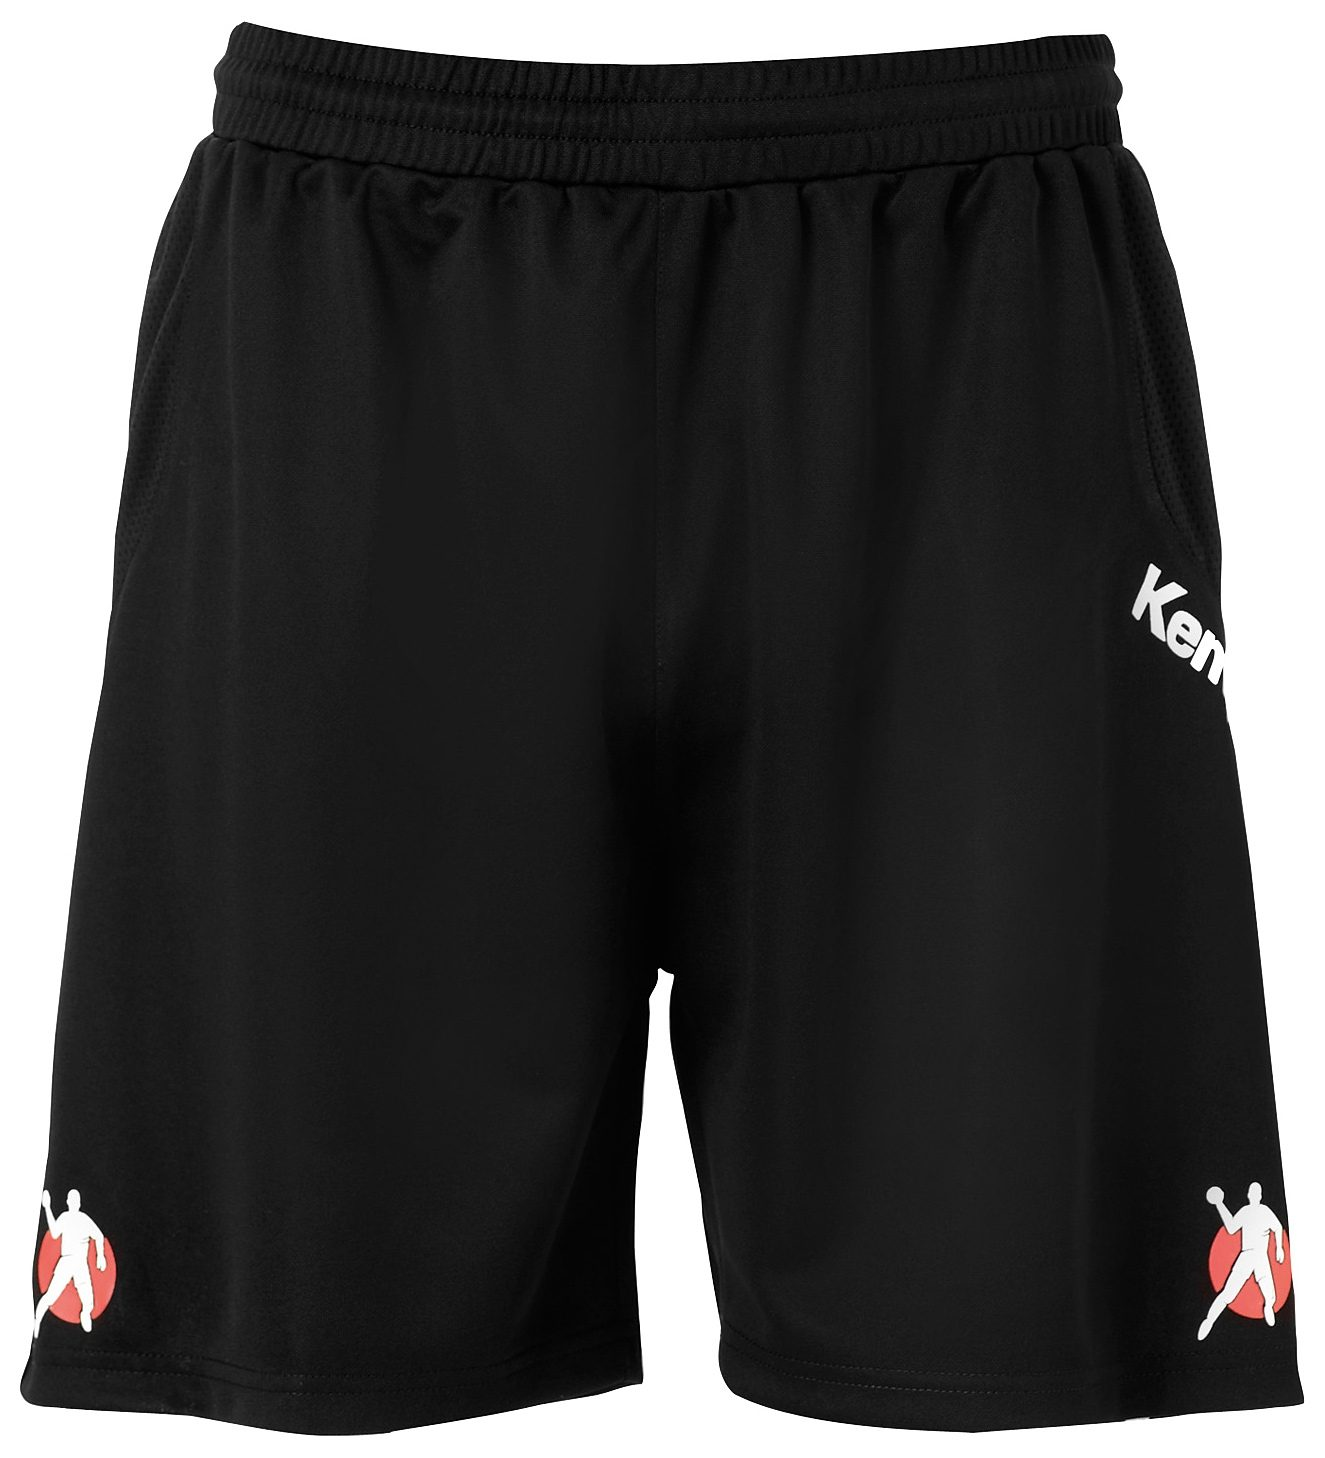 KEMPA Referee Shorts Kinder